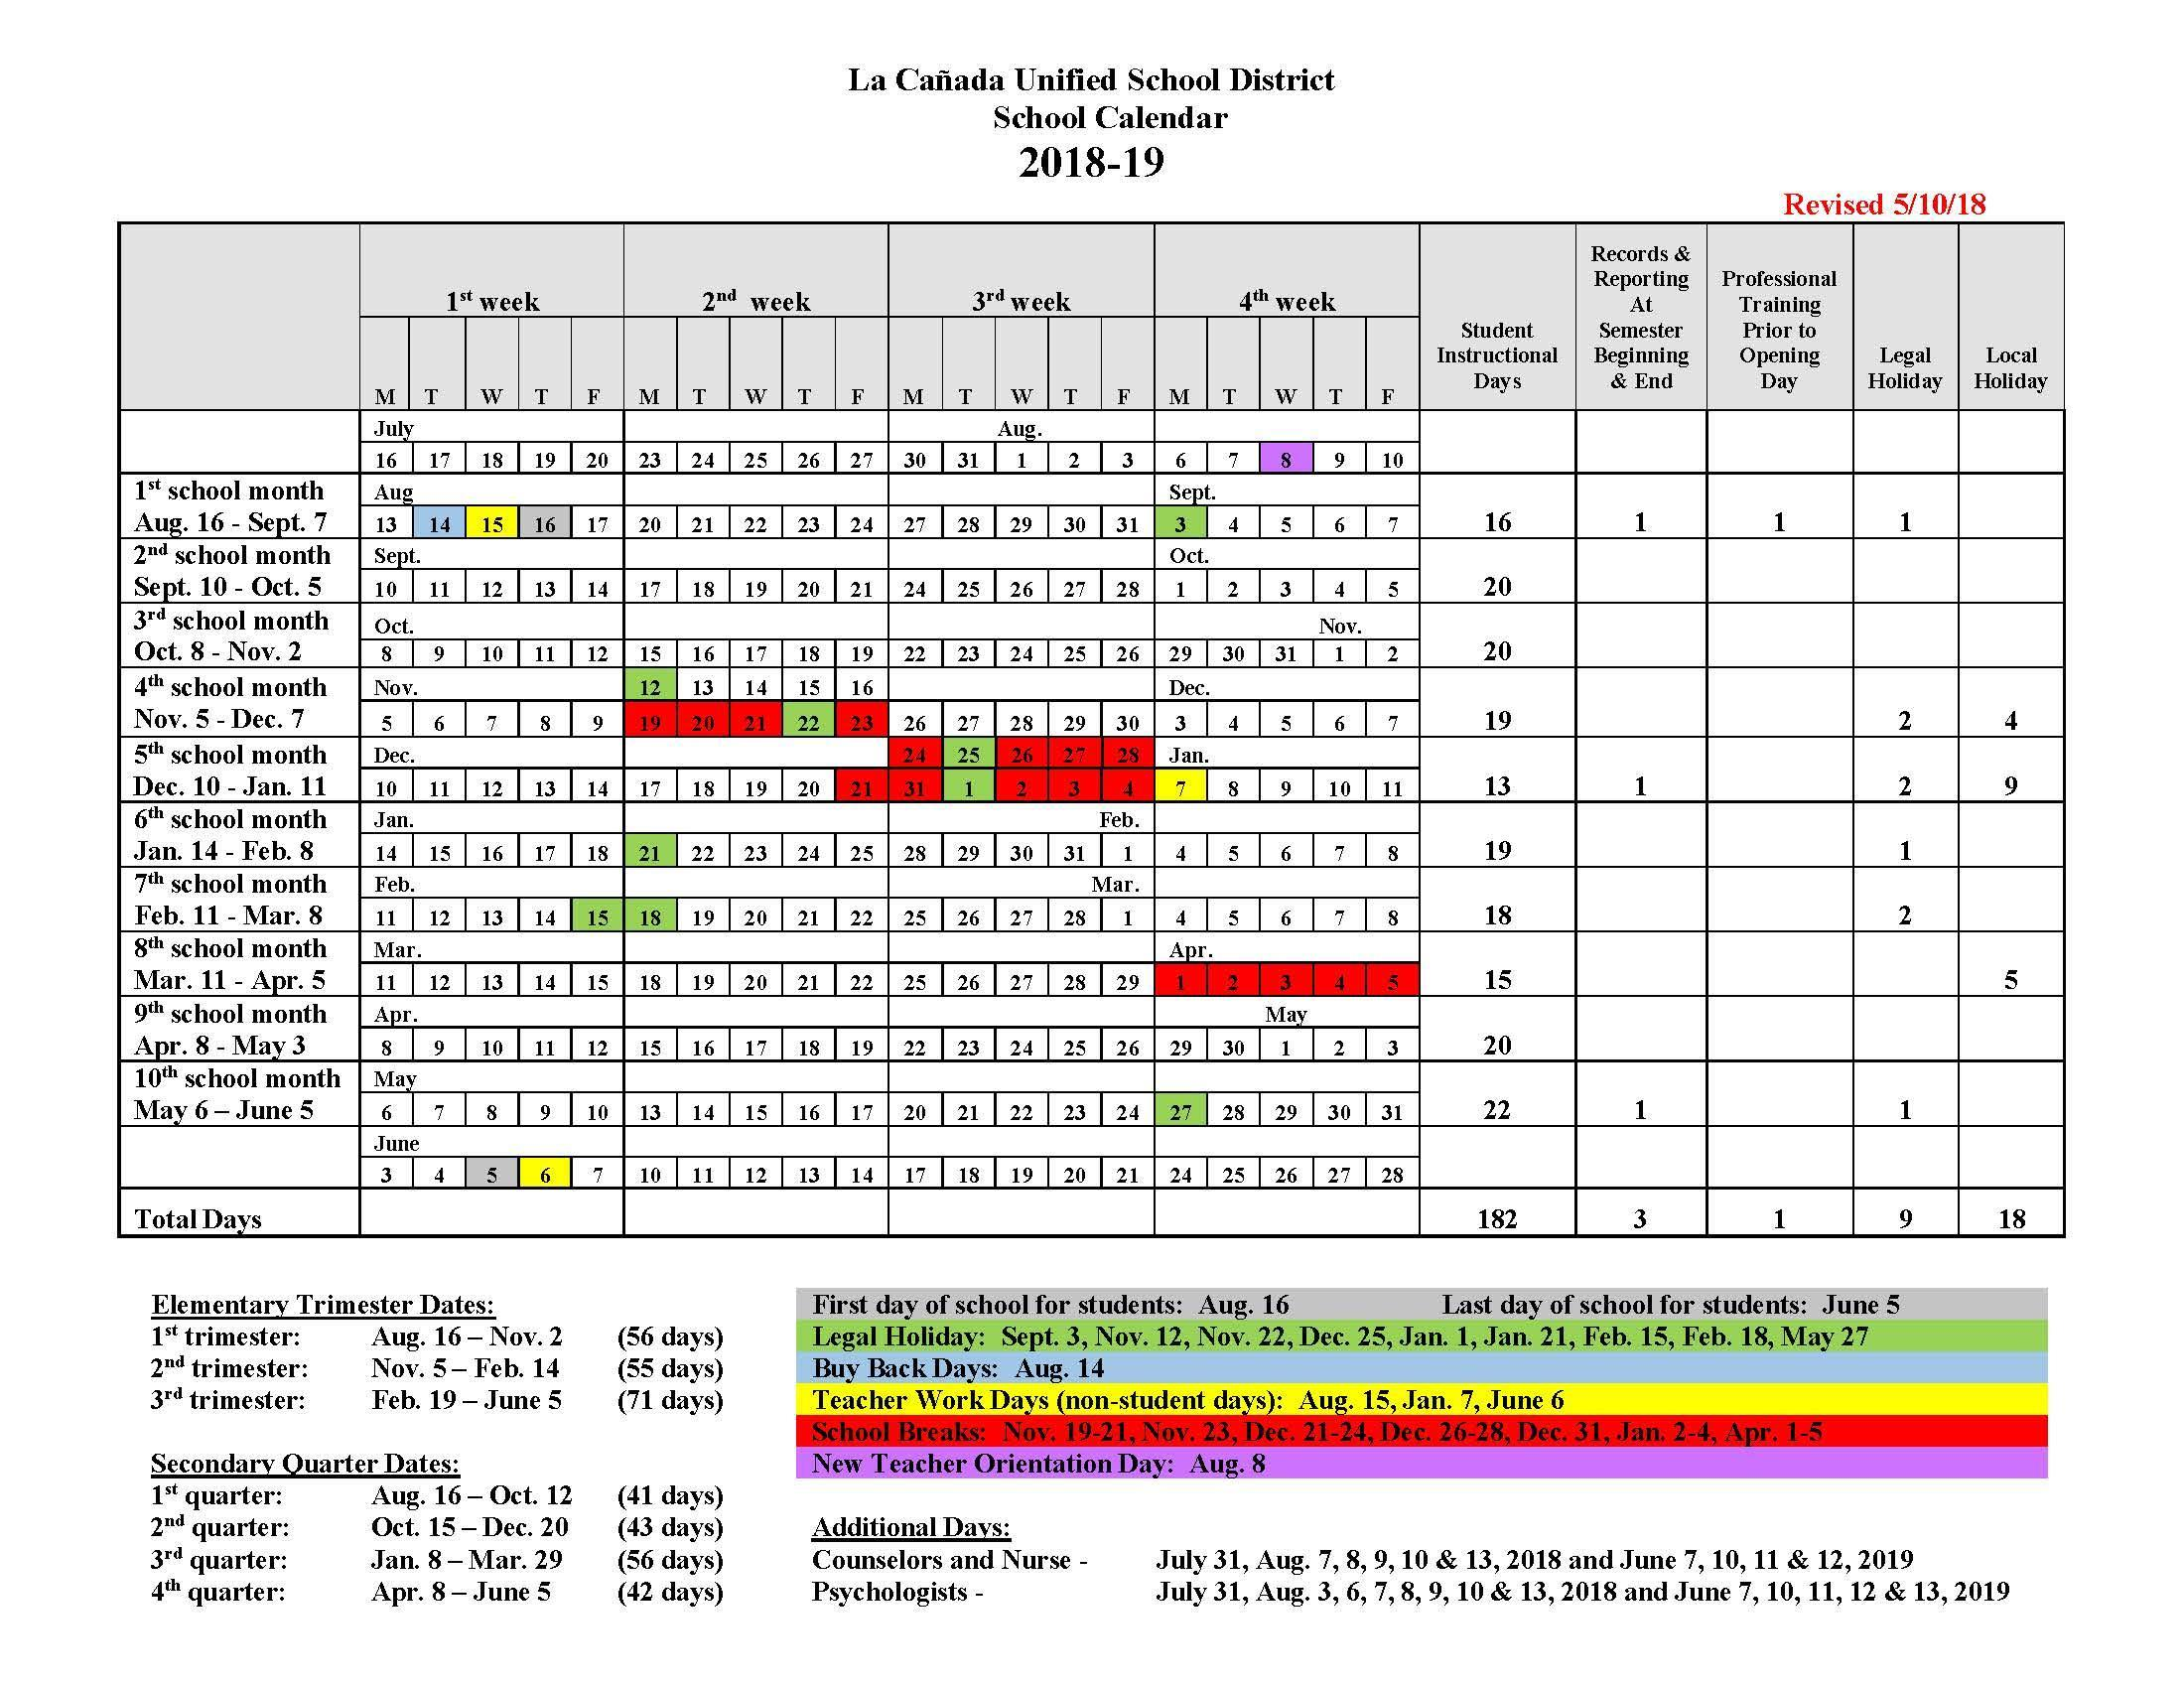 Instructional Days Calendars Yearly Calendars La Canada Unified